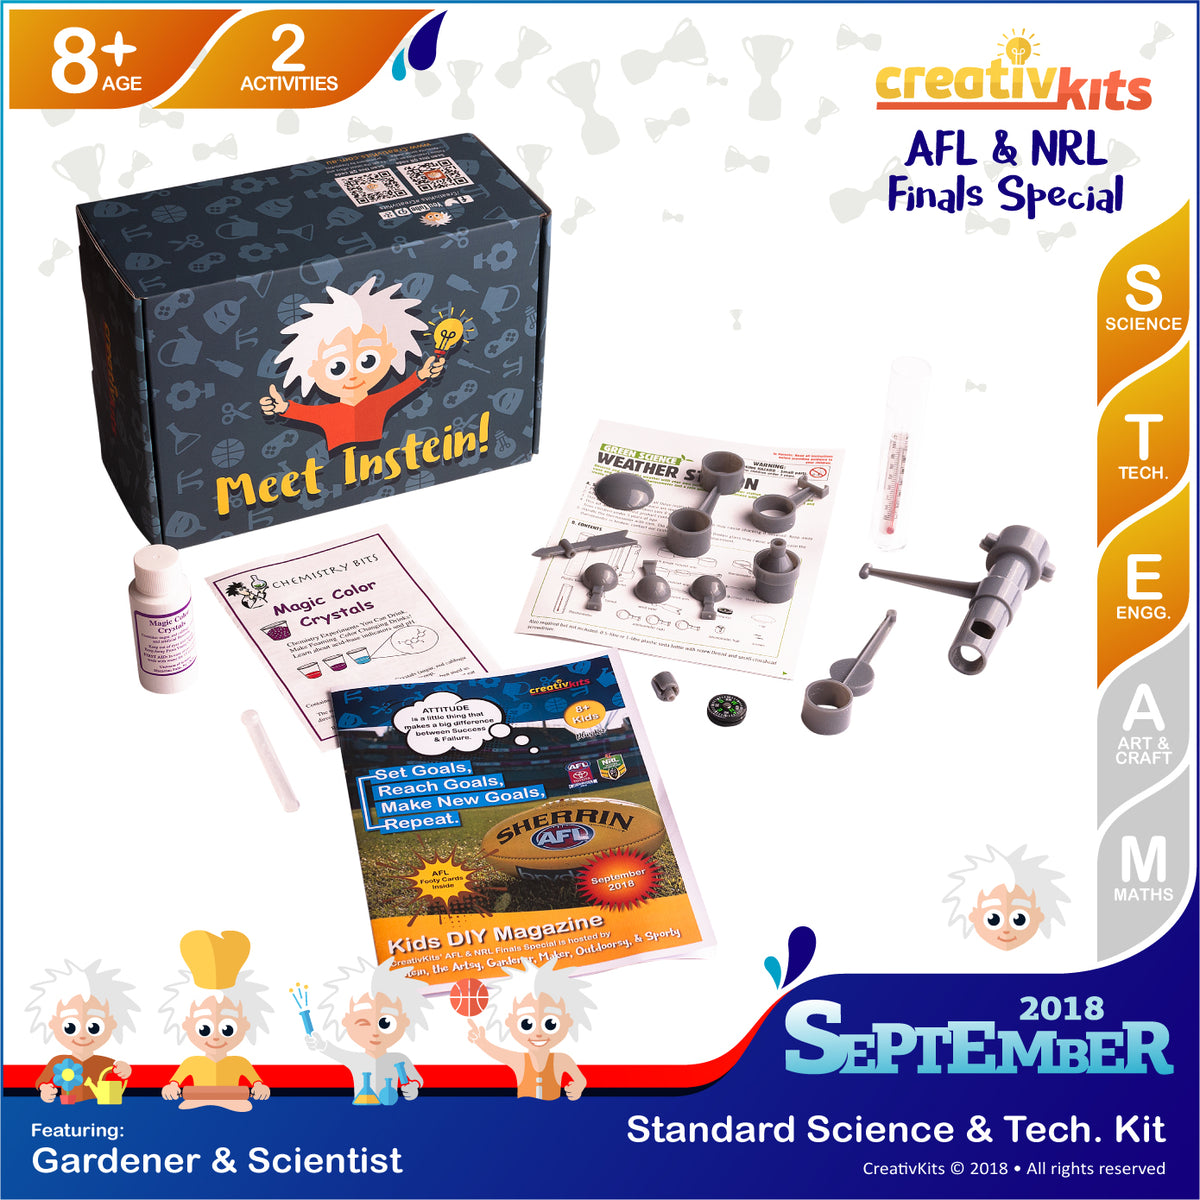 Make Your Own Magic Color Crystals and Weather Station | Sep. Standard Science & Tech. Kit | Age 8+